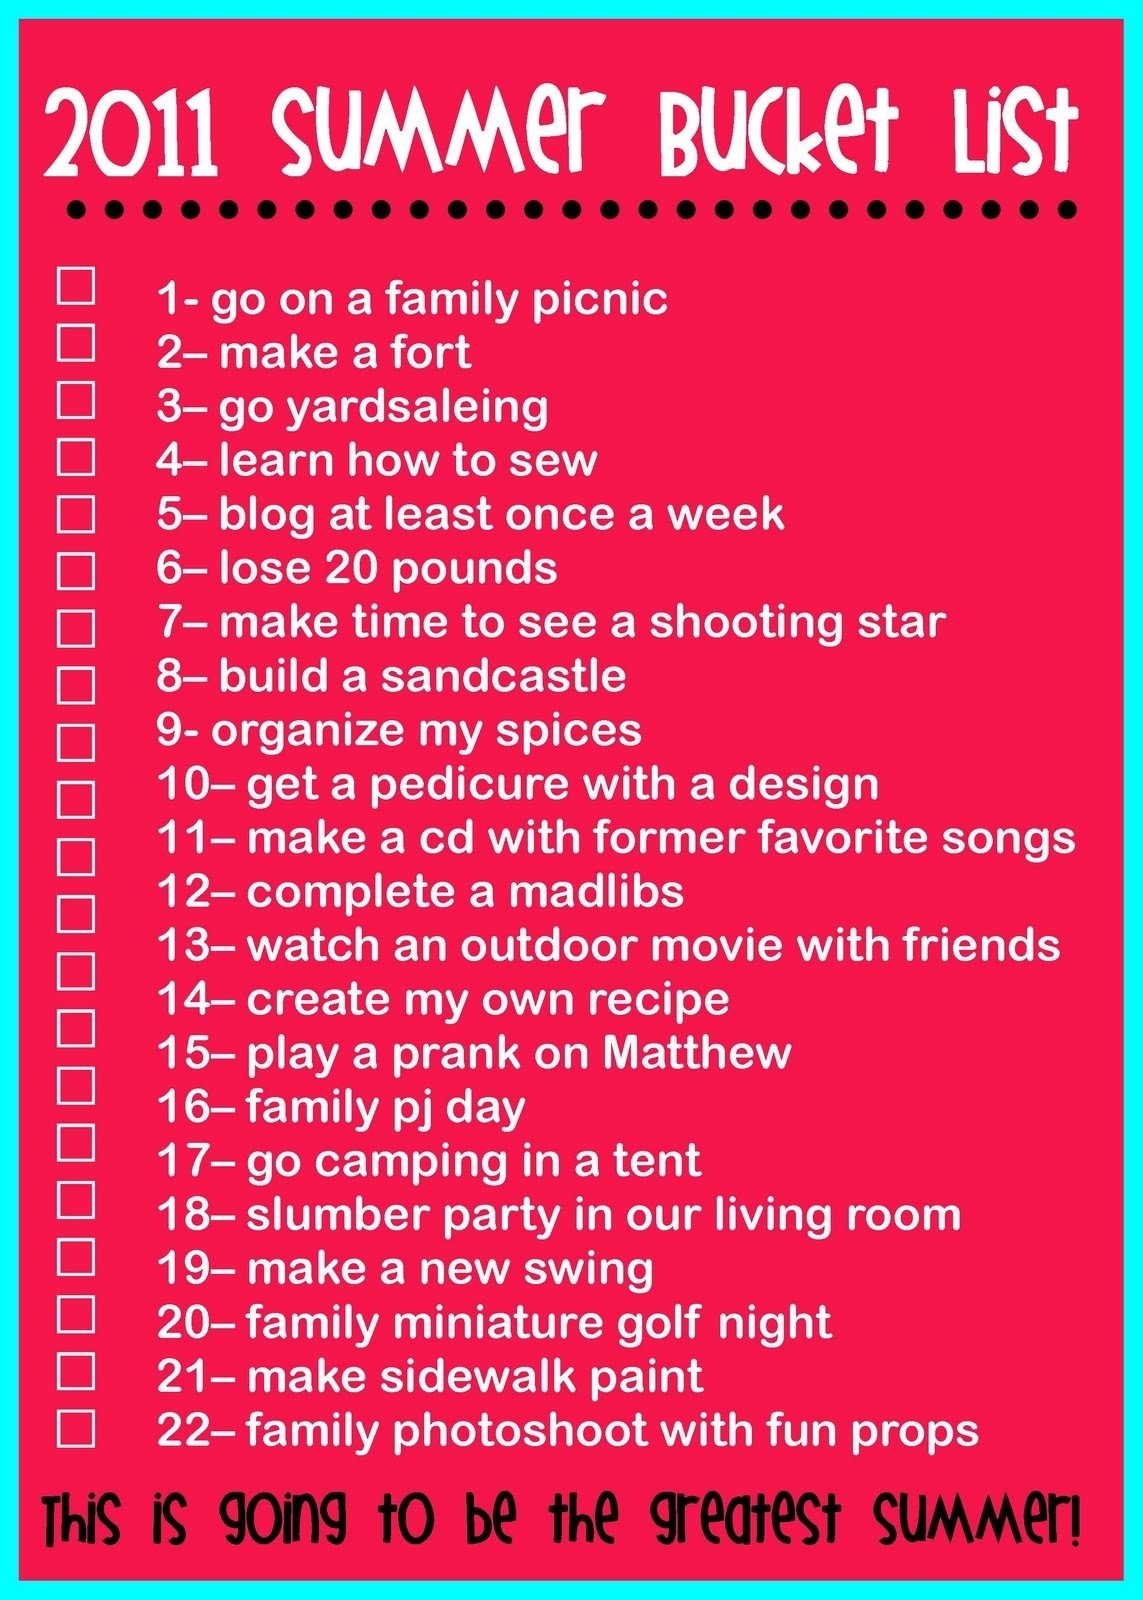 the rollins family: 2011 summer bucket list | summer lists